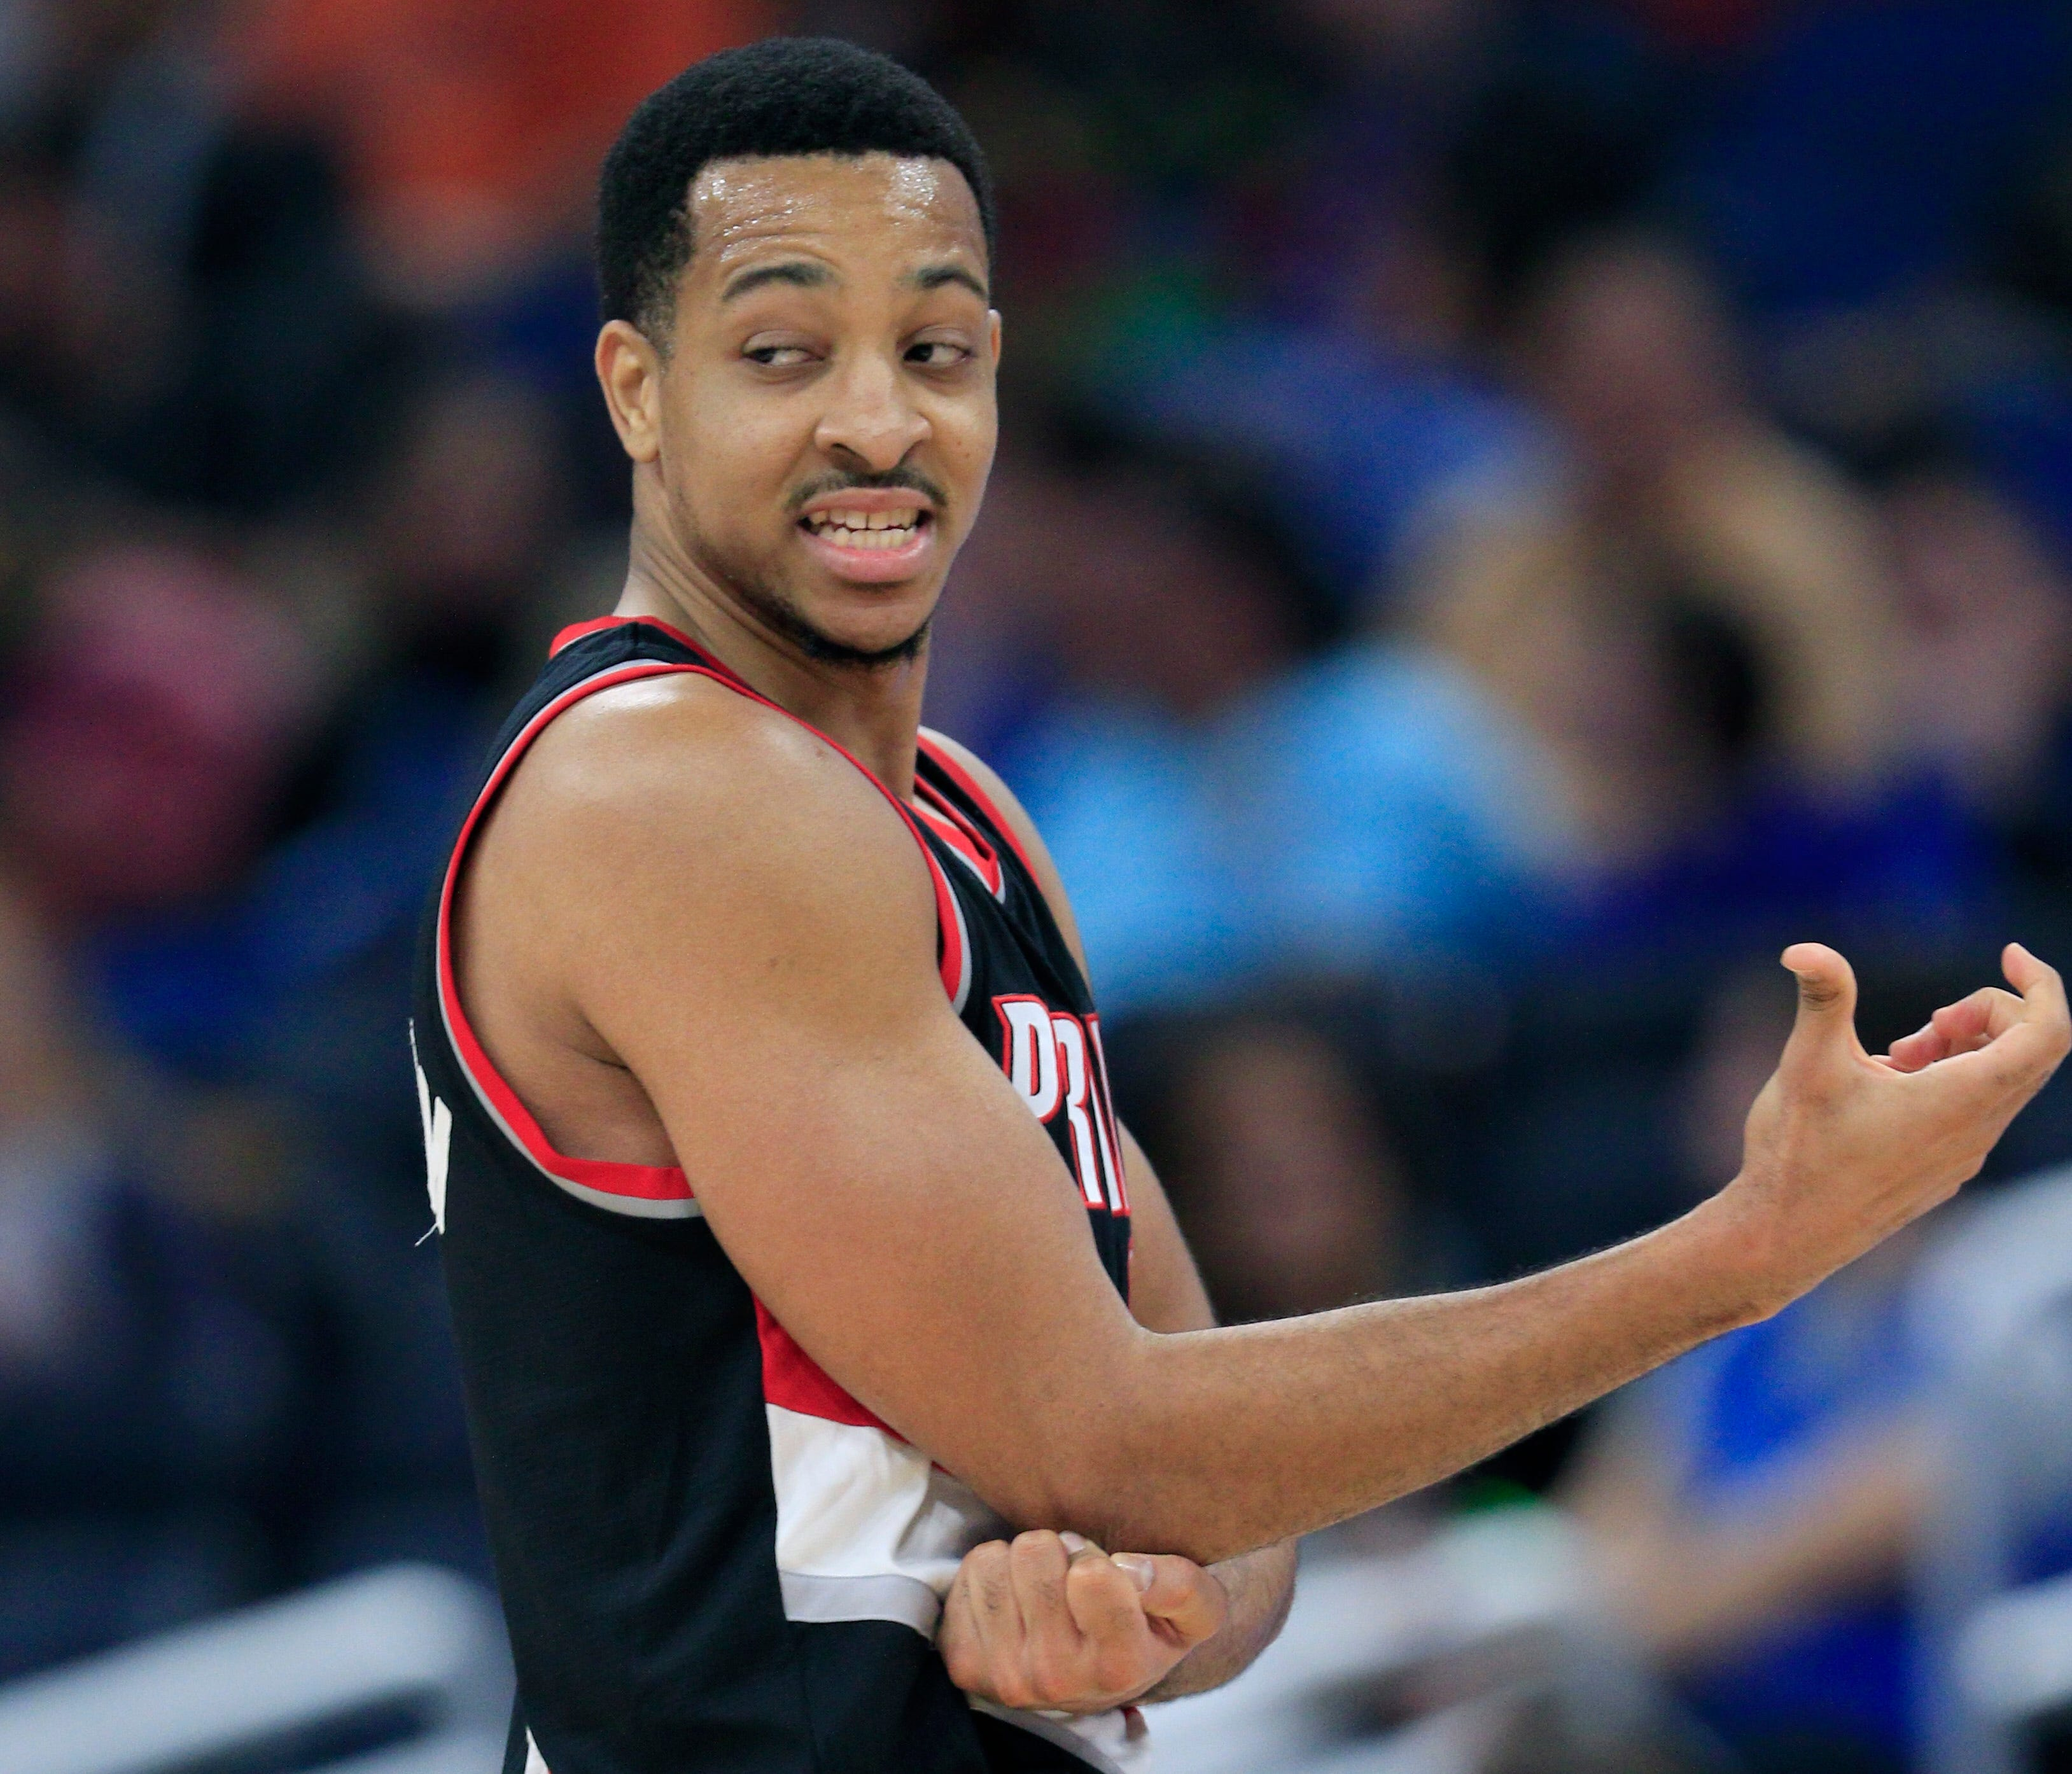 Feb 23, 2017; Orlando, FL, USA; Portland Trail Blazers guard C.J. McCollum (3) rubs his right elbow after a hard fall during the fourth quarter against the Orlando Magic at Amway Center. The Trail Blazers won 112-103. Mandatory Credit: Reinhold Matay